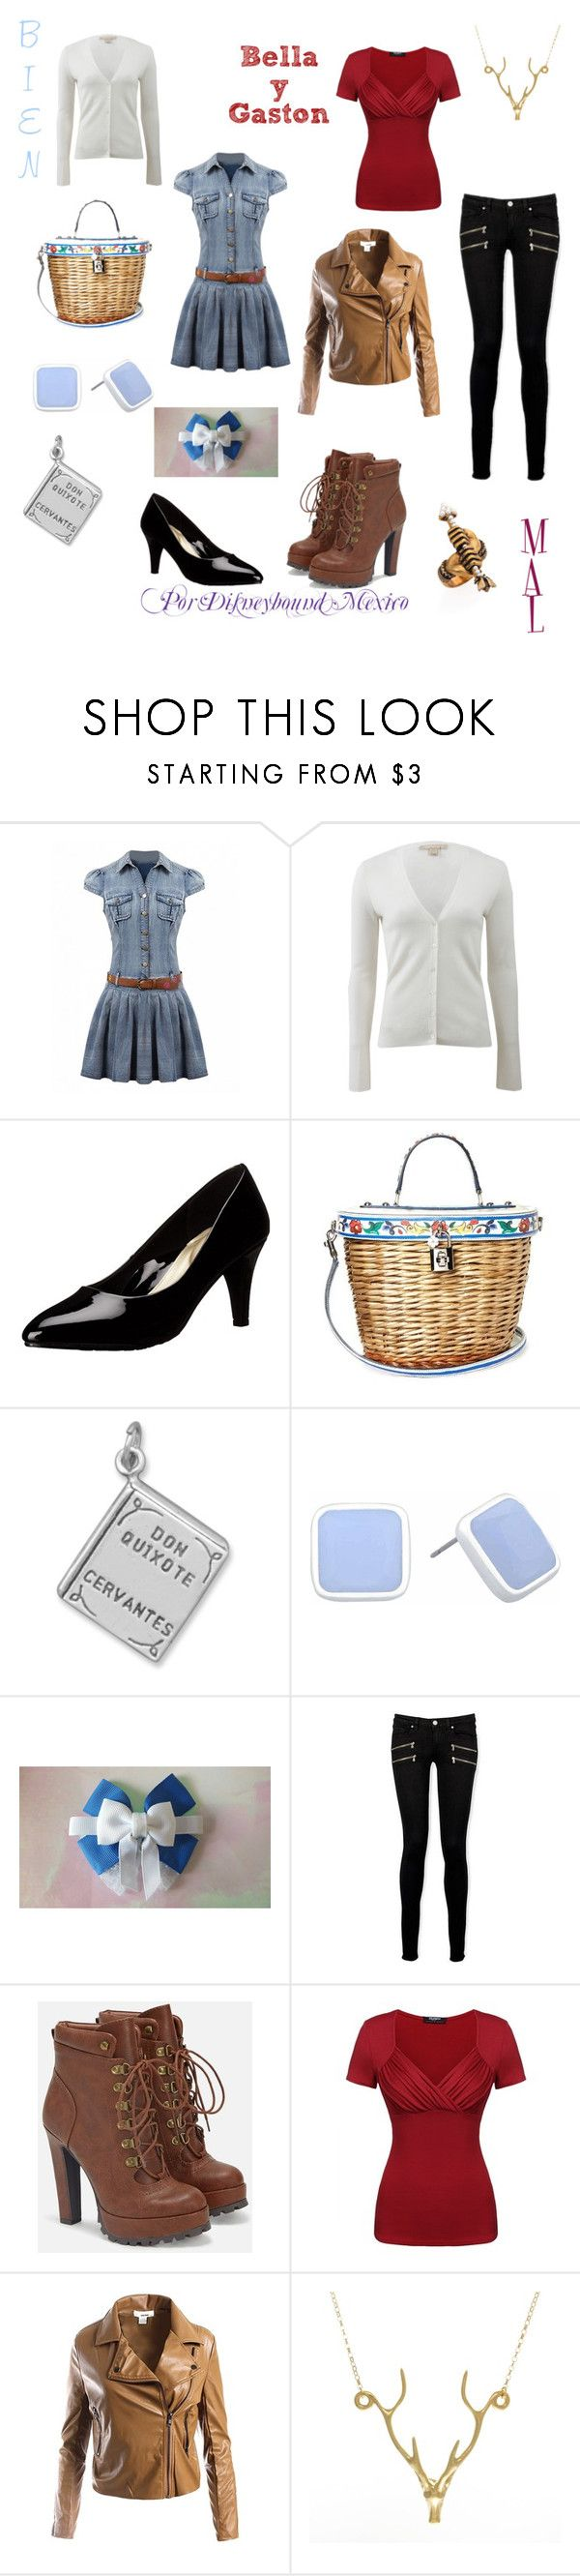 """""""Bella y Gaston (Good vs Evil)"""" by disneybound-mexico ❤ liked on Polyvore featuring Michael Kors, Dolce&Gabbana, BillyTheTree, Liz Claiborne, Paige Denim, JustFab, Sans Souci, Lee Renee and Gucci"""